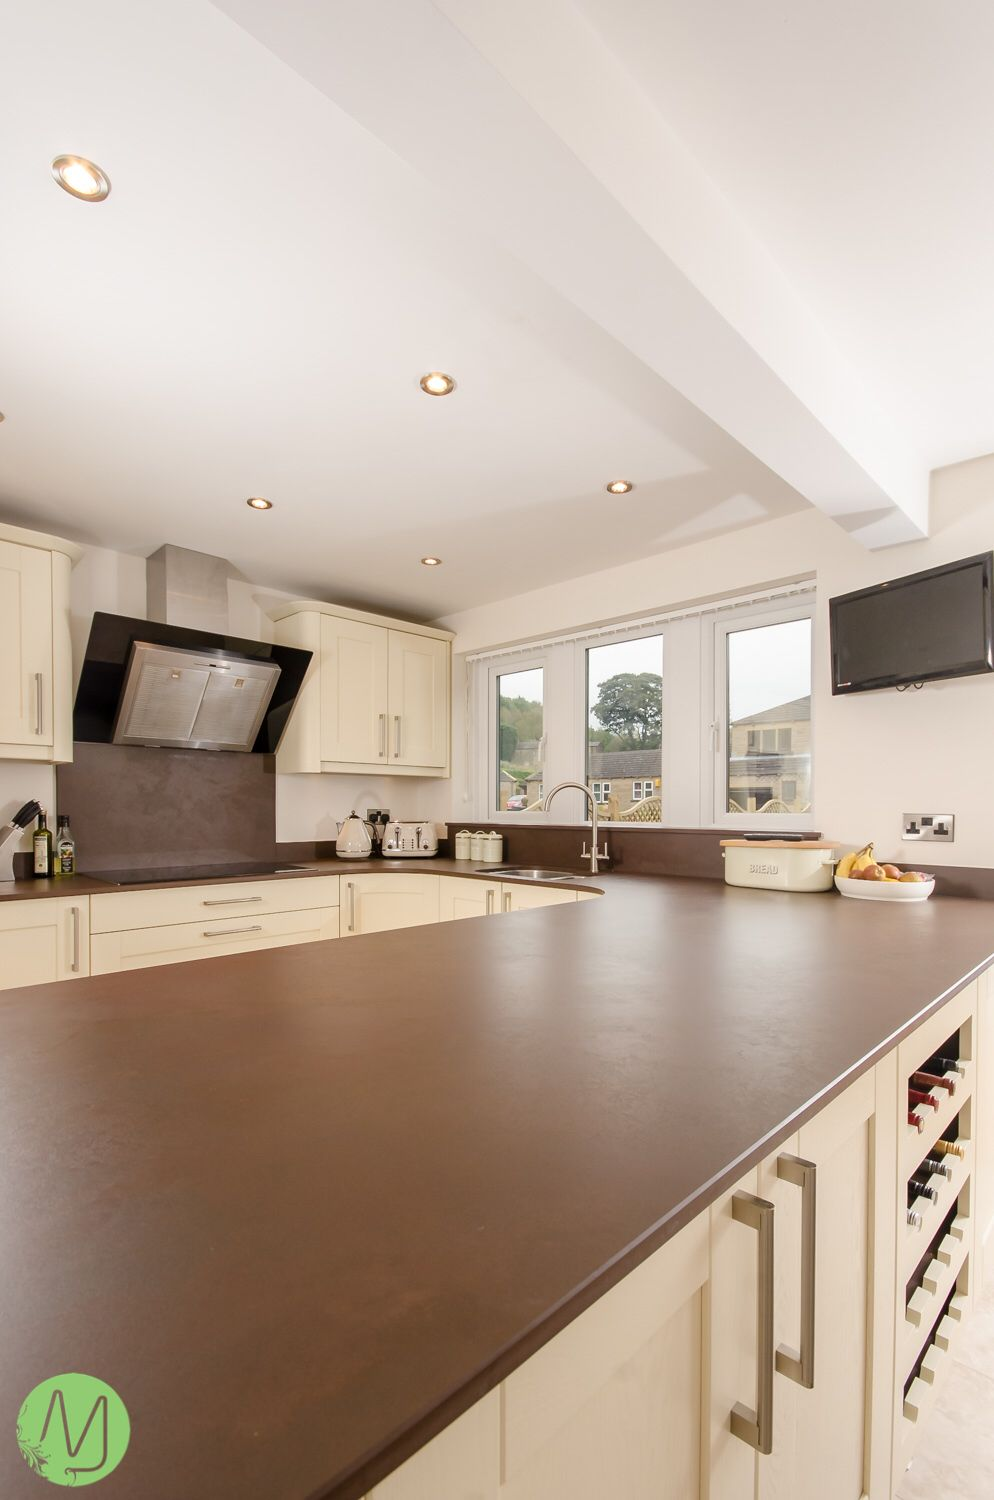 Our kitchen of the week is this gorgeous shaker style kitchen with ...